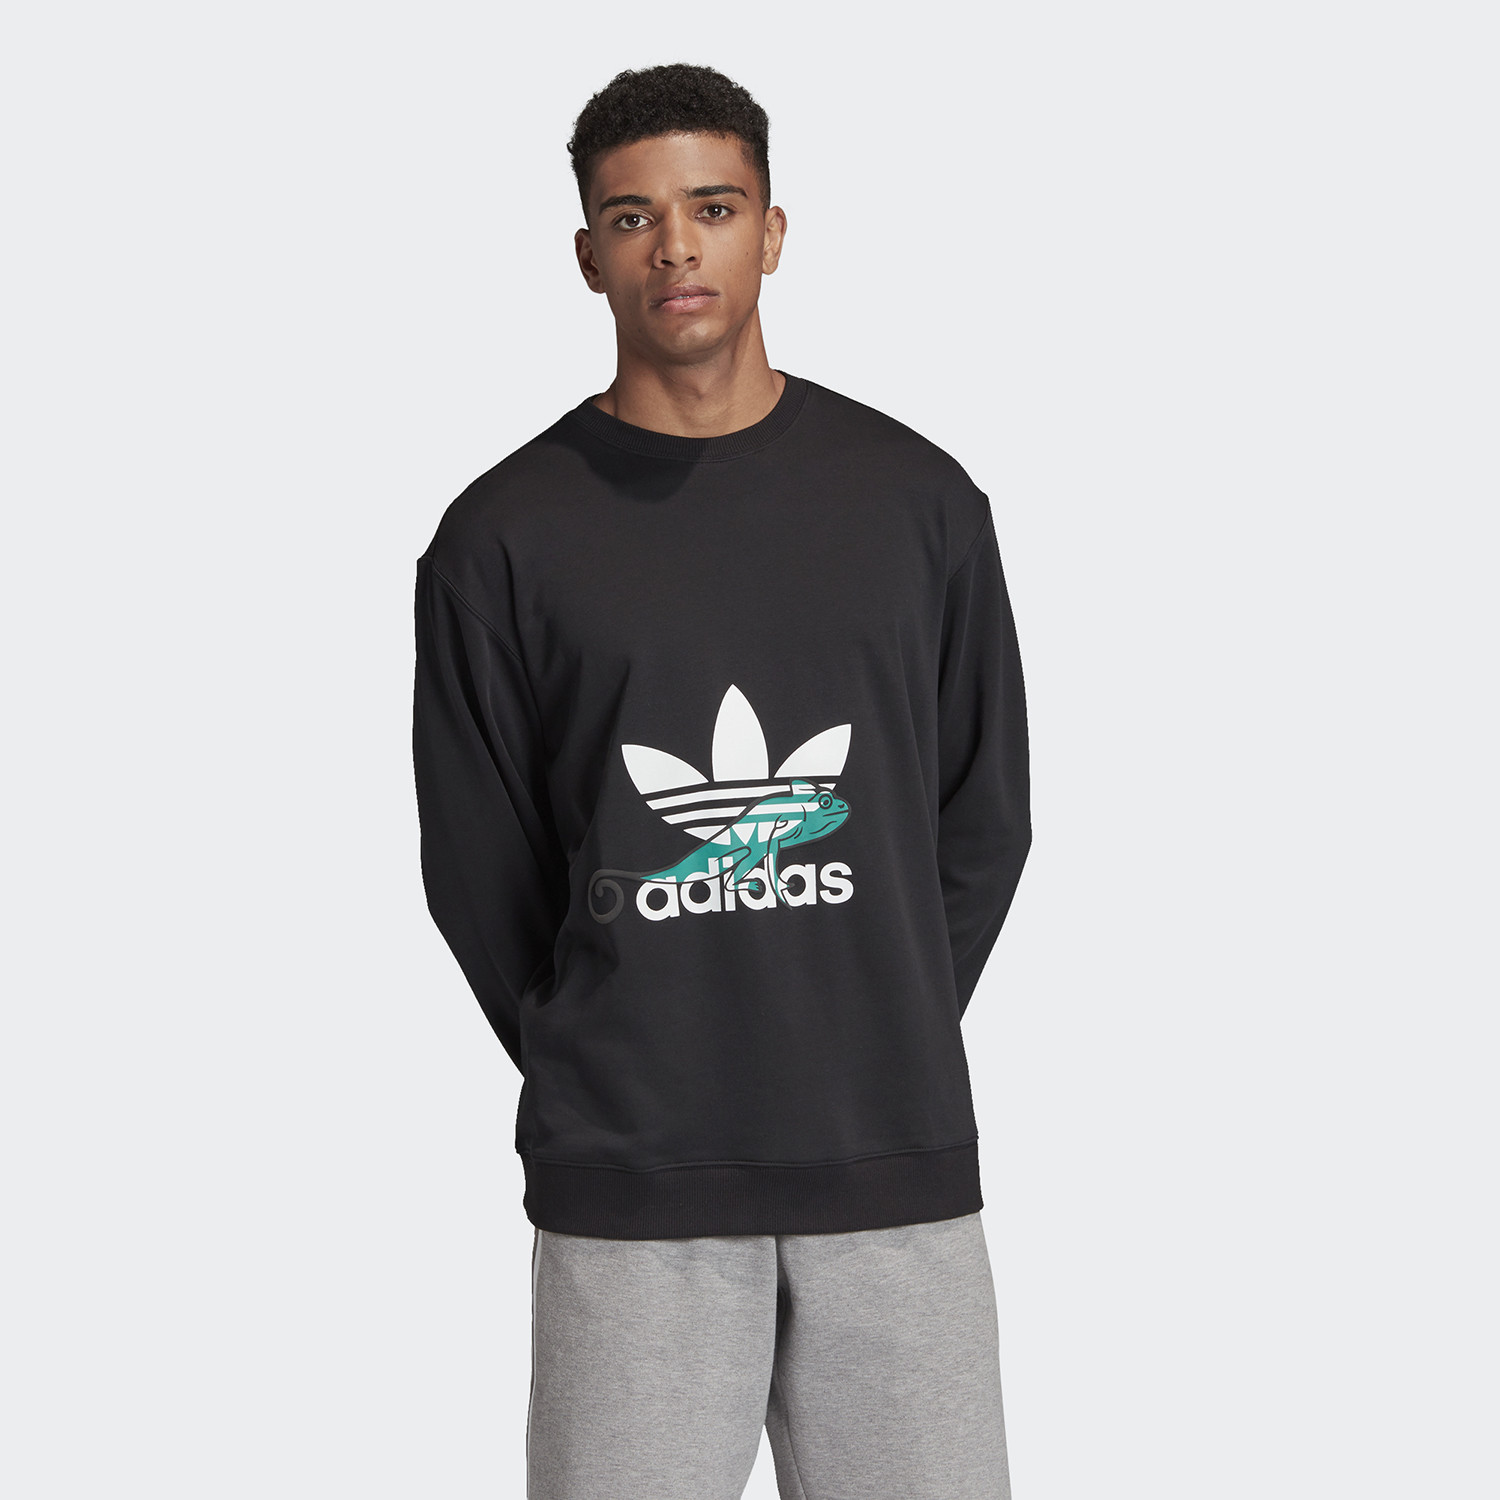 adidas Originals Pt3 Men's Sweatshirt (9000045543_1469)